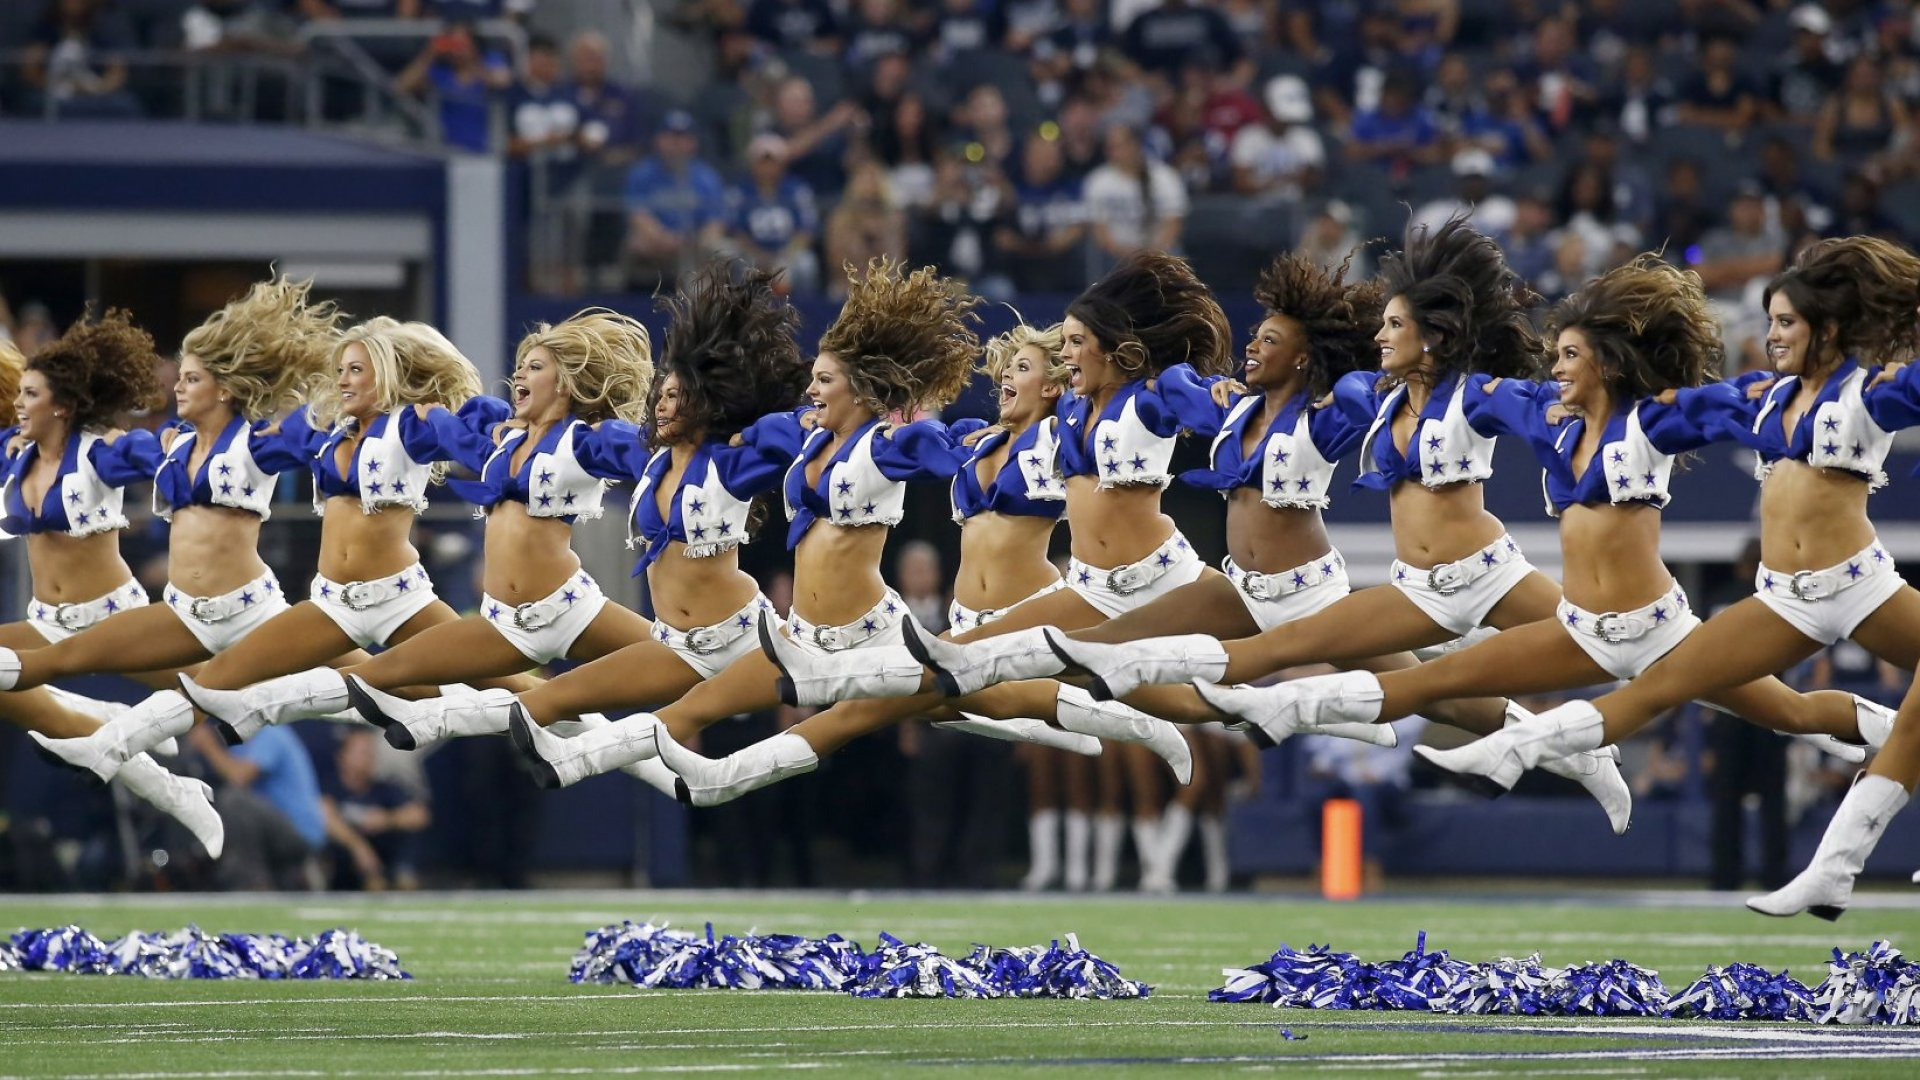 NFL Cheerleader: A Job Where You're Told How to Use a Tampon